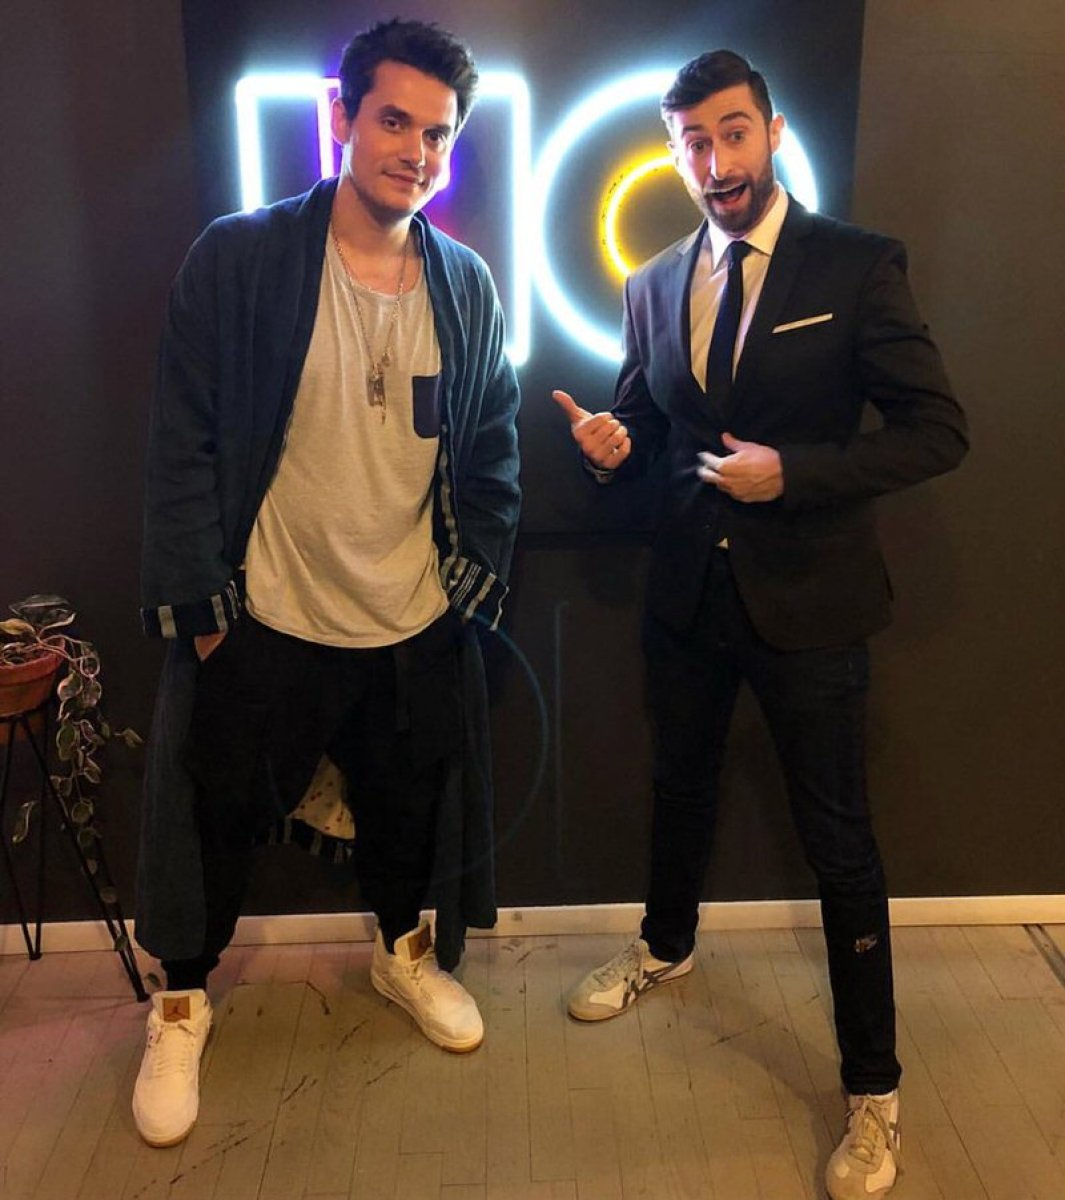 John Mayer in the Levis x Air Jordan 4